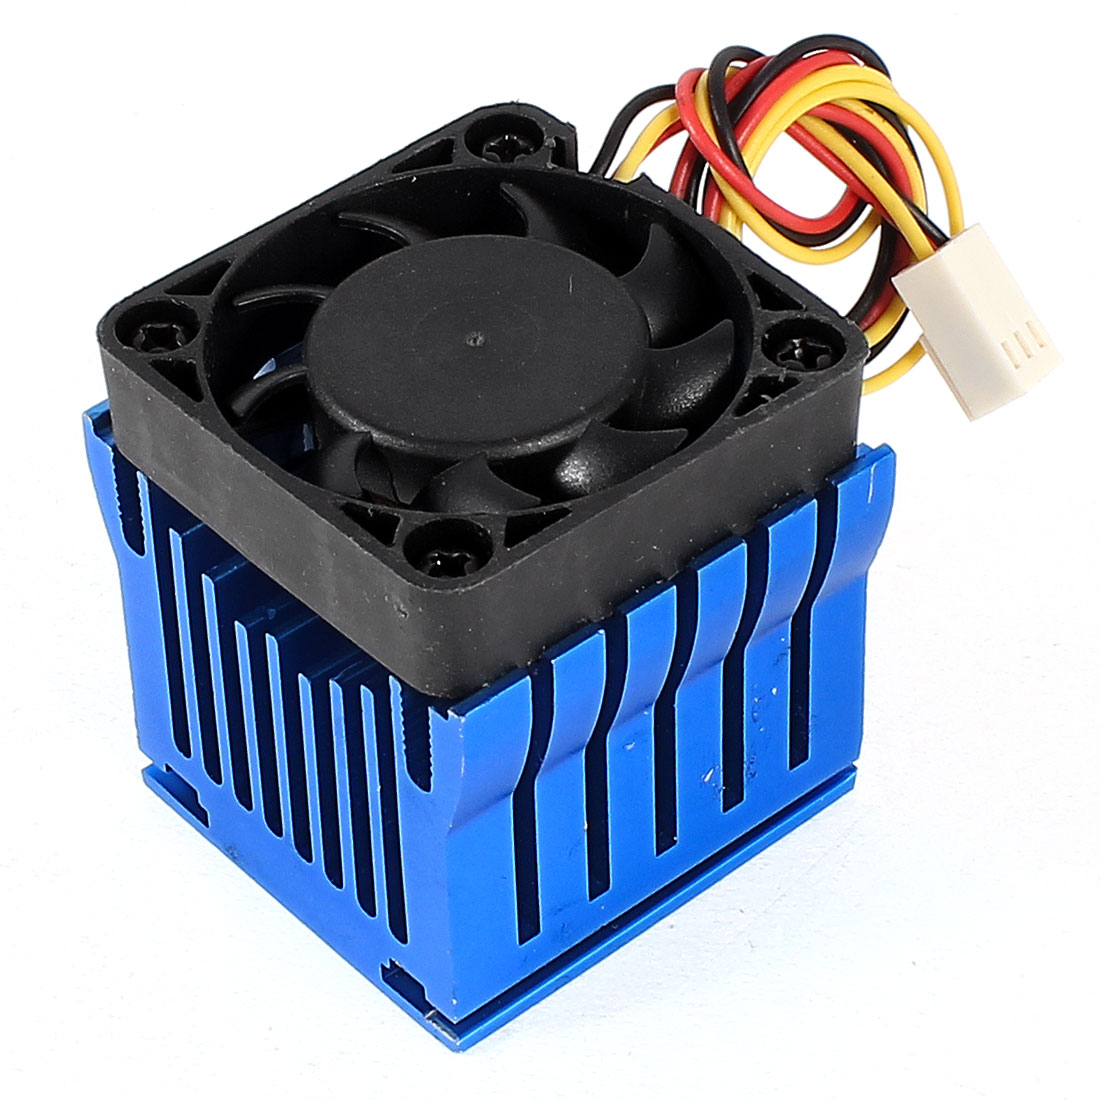 40mmx40mm 3 Pin Cooler Cooling Fan Heatsink for Computer Motherboard Chipset